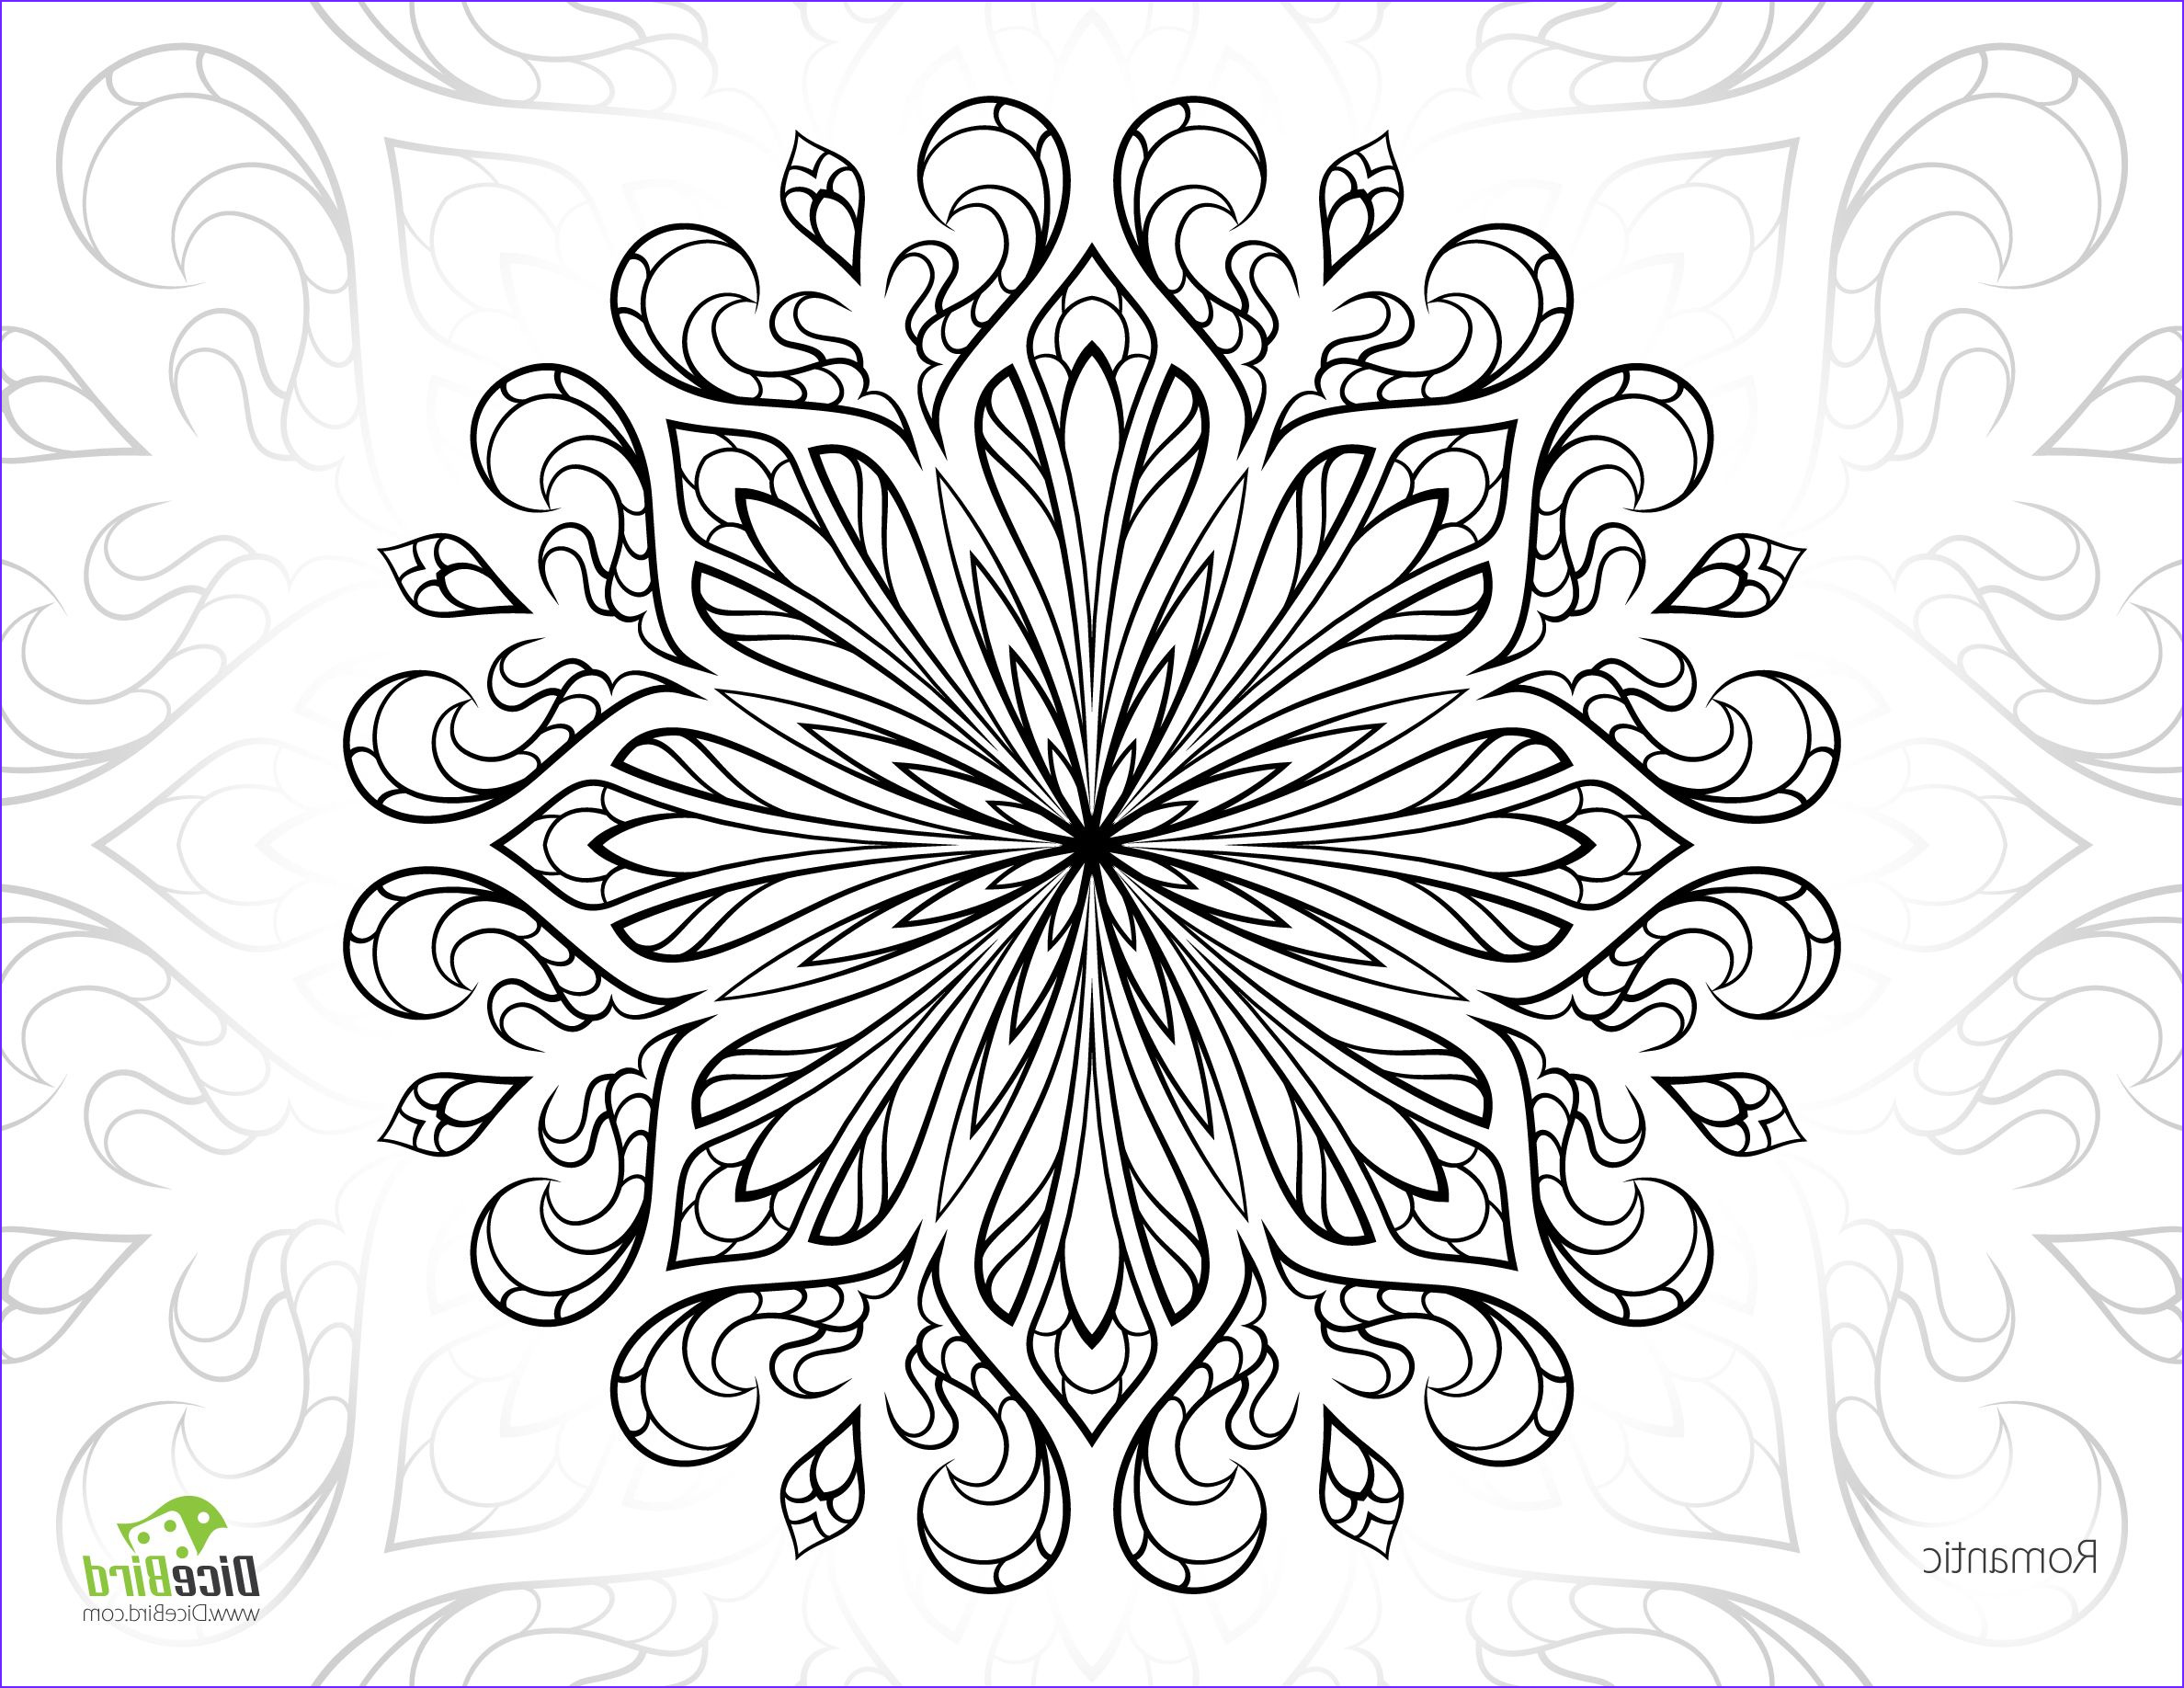 Free Printable Advanced Coloring Pages Cool Photos Free Printable Coloring Pages for Adults Advanced Romantic